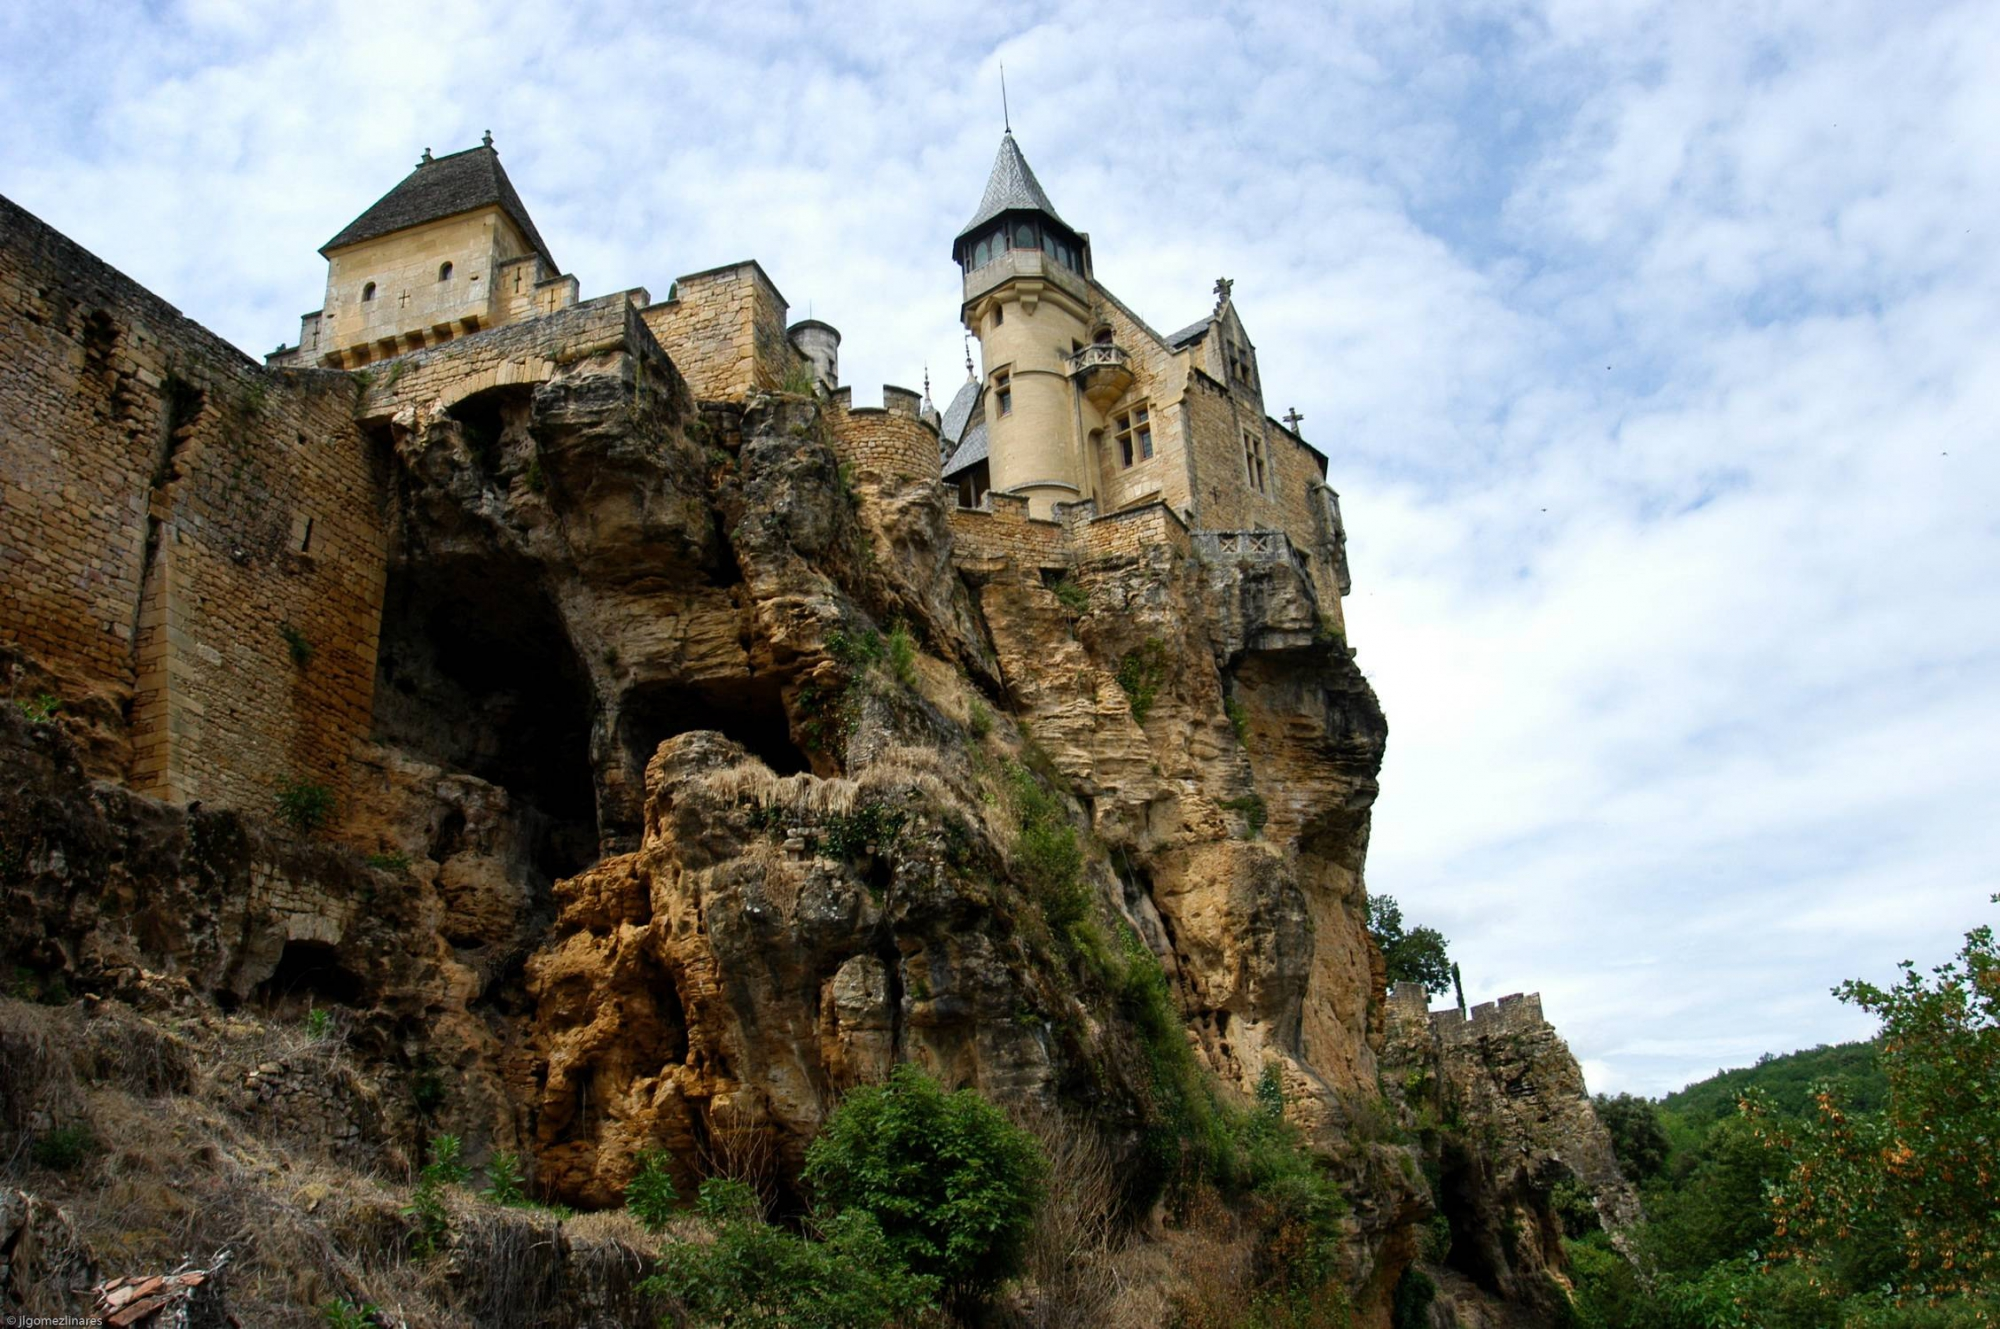 Castle Clayette, Франция интересное, фото